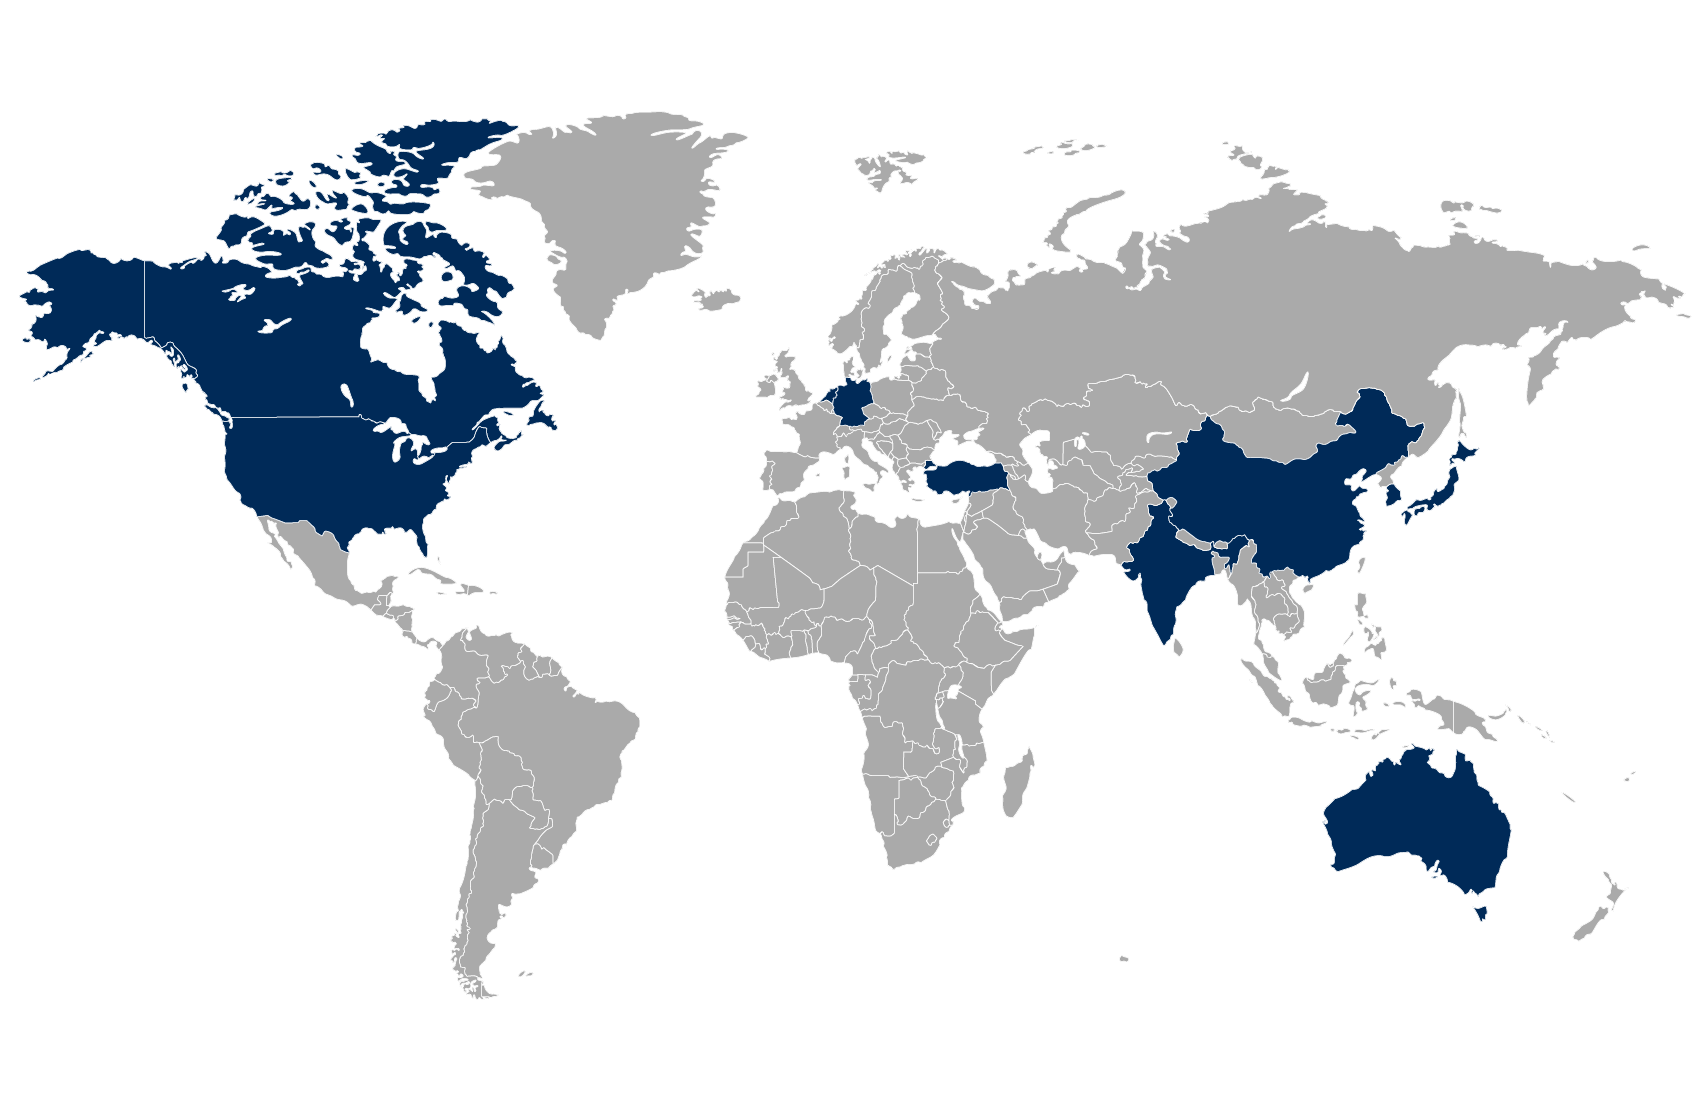 World MAP of EMBA students